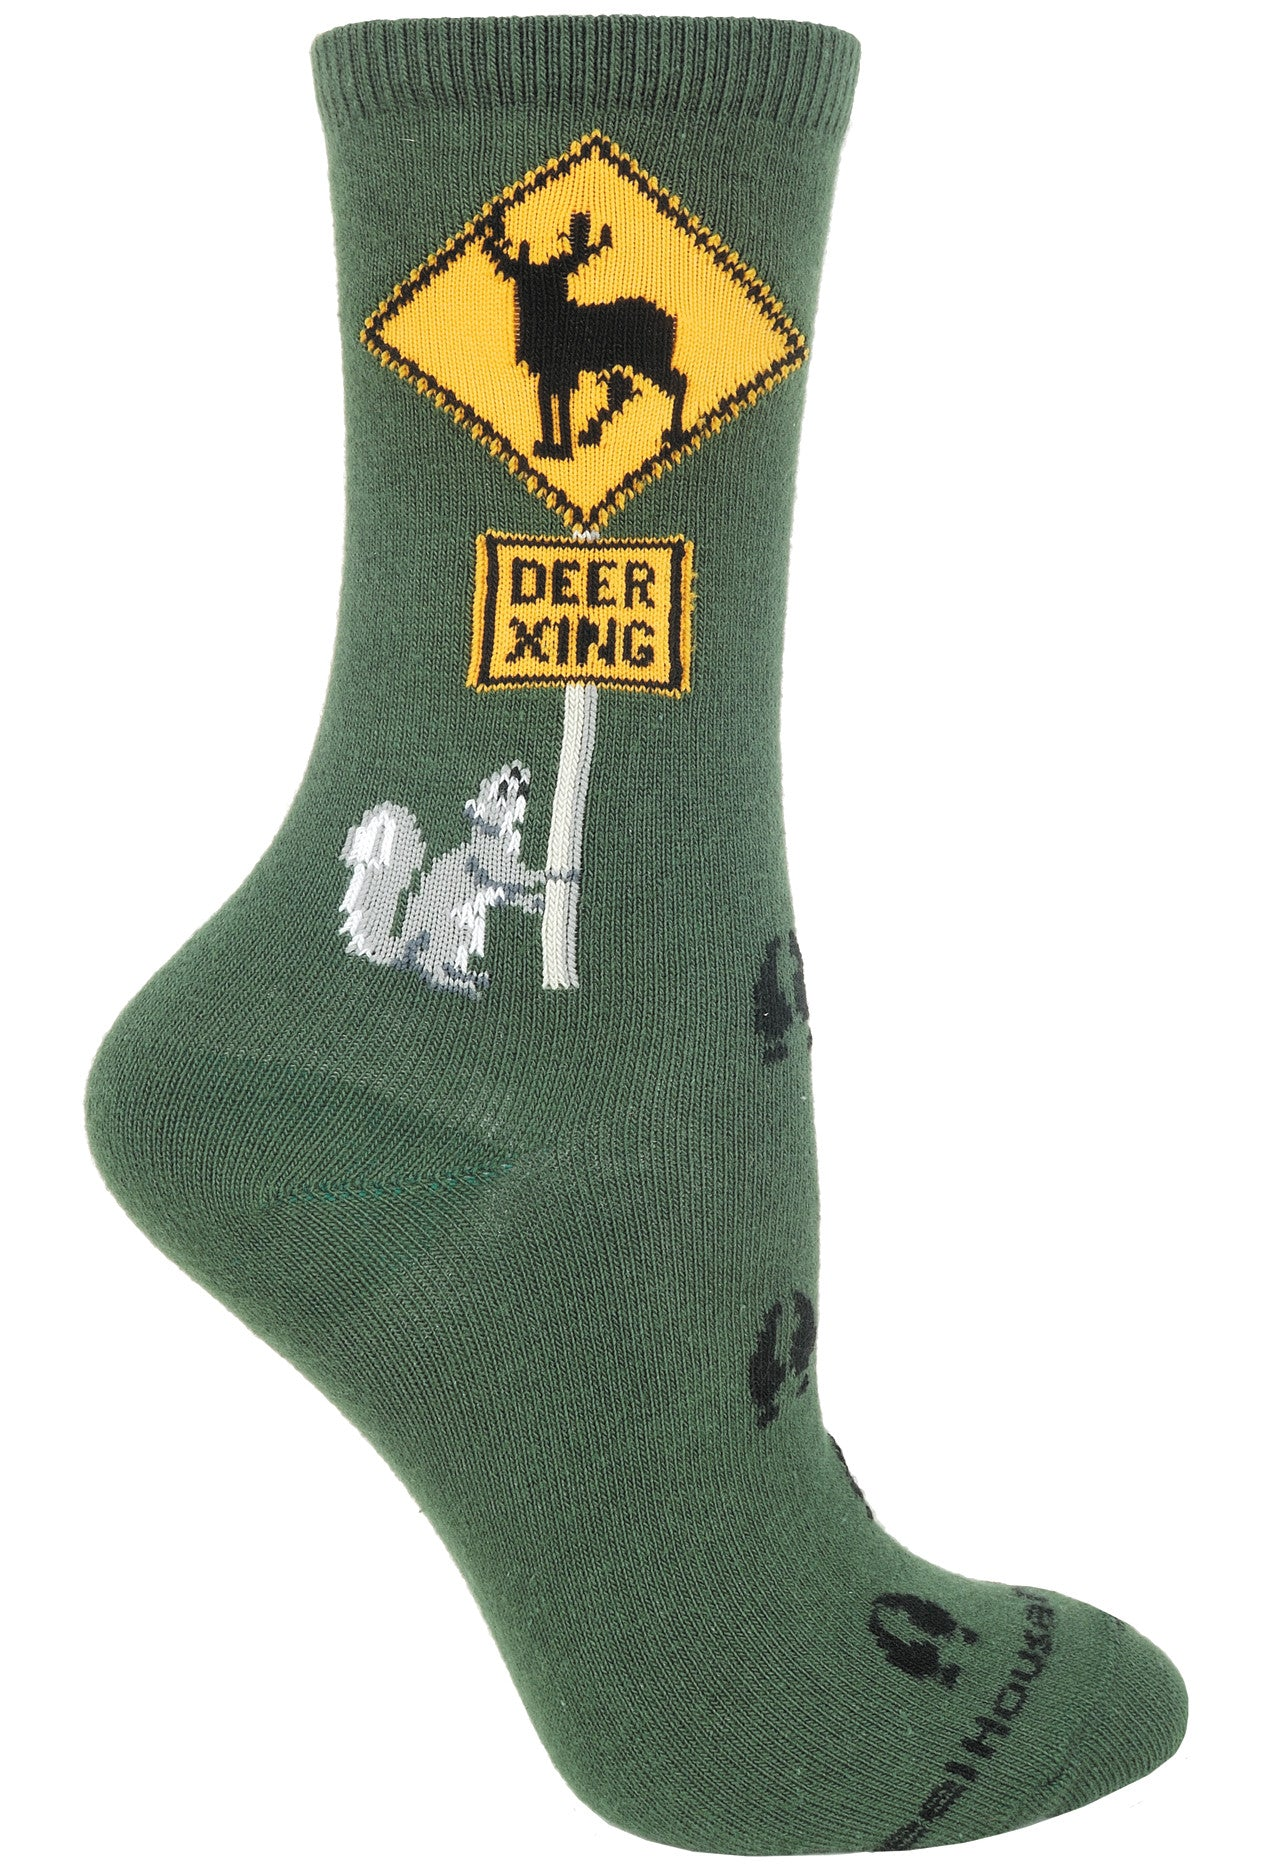 Deer Xing Crew Socks on Hunter Green